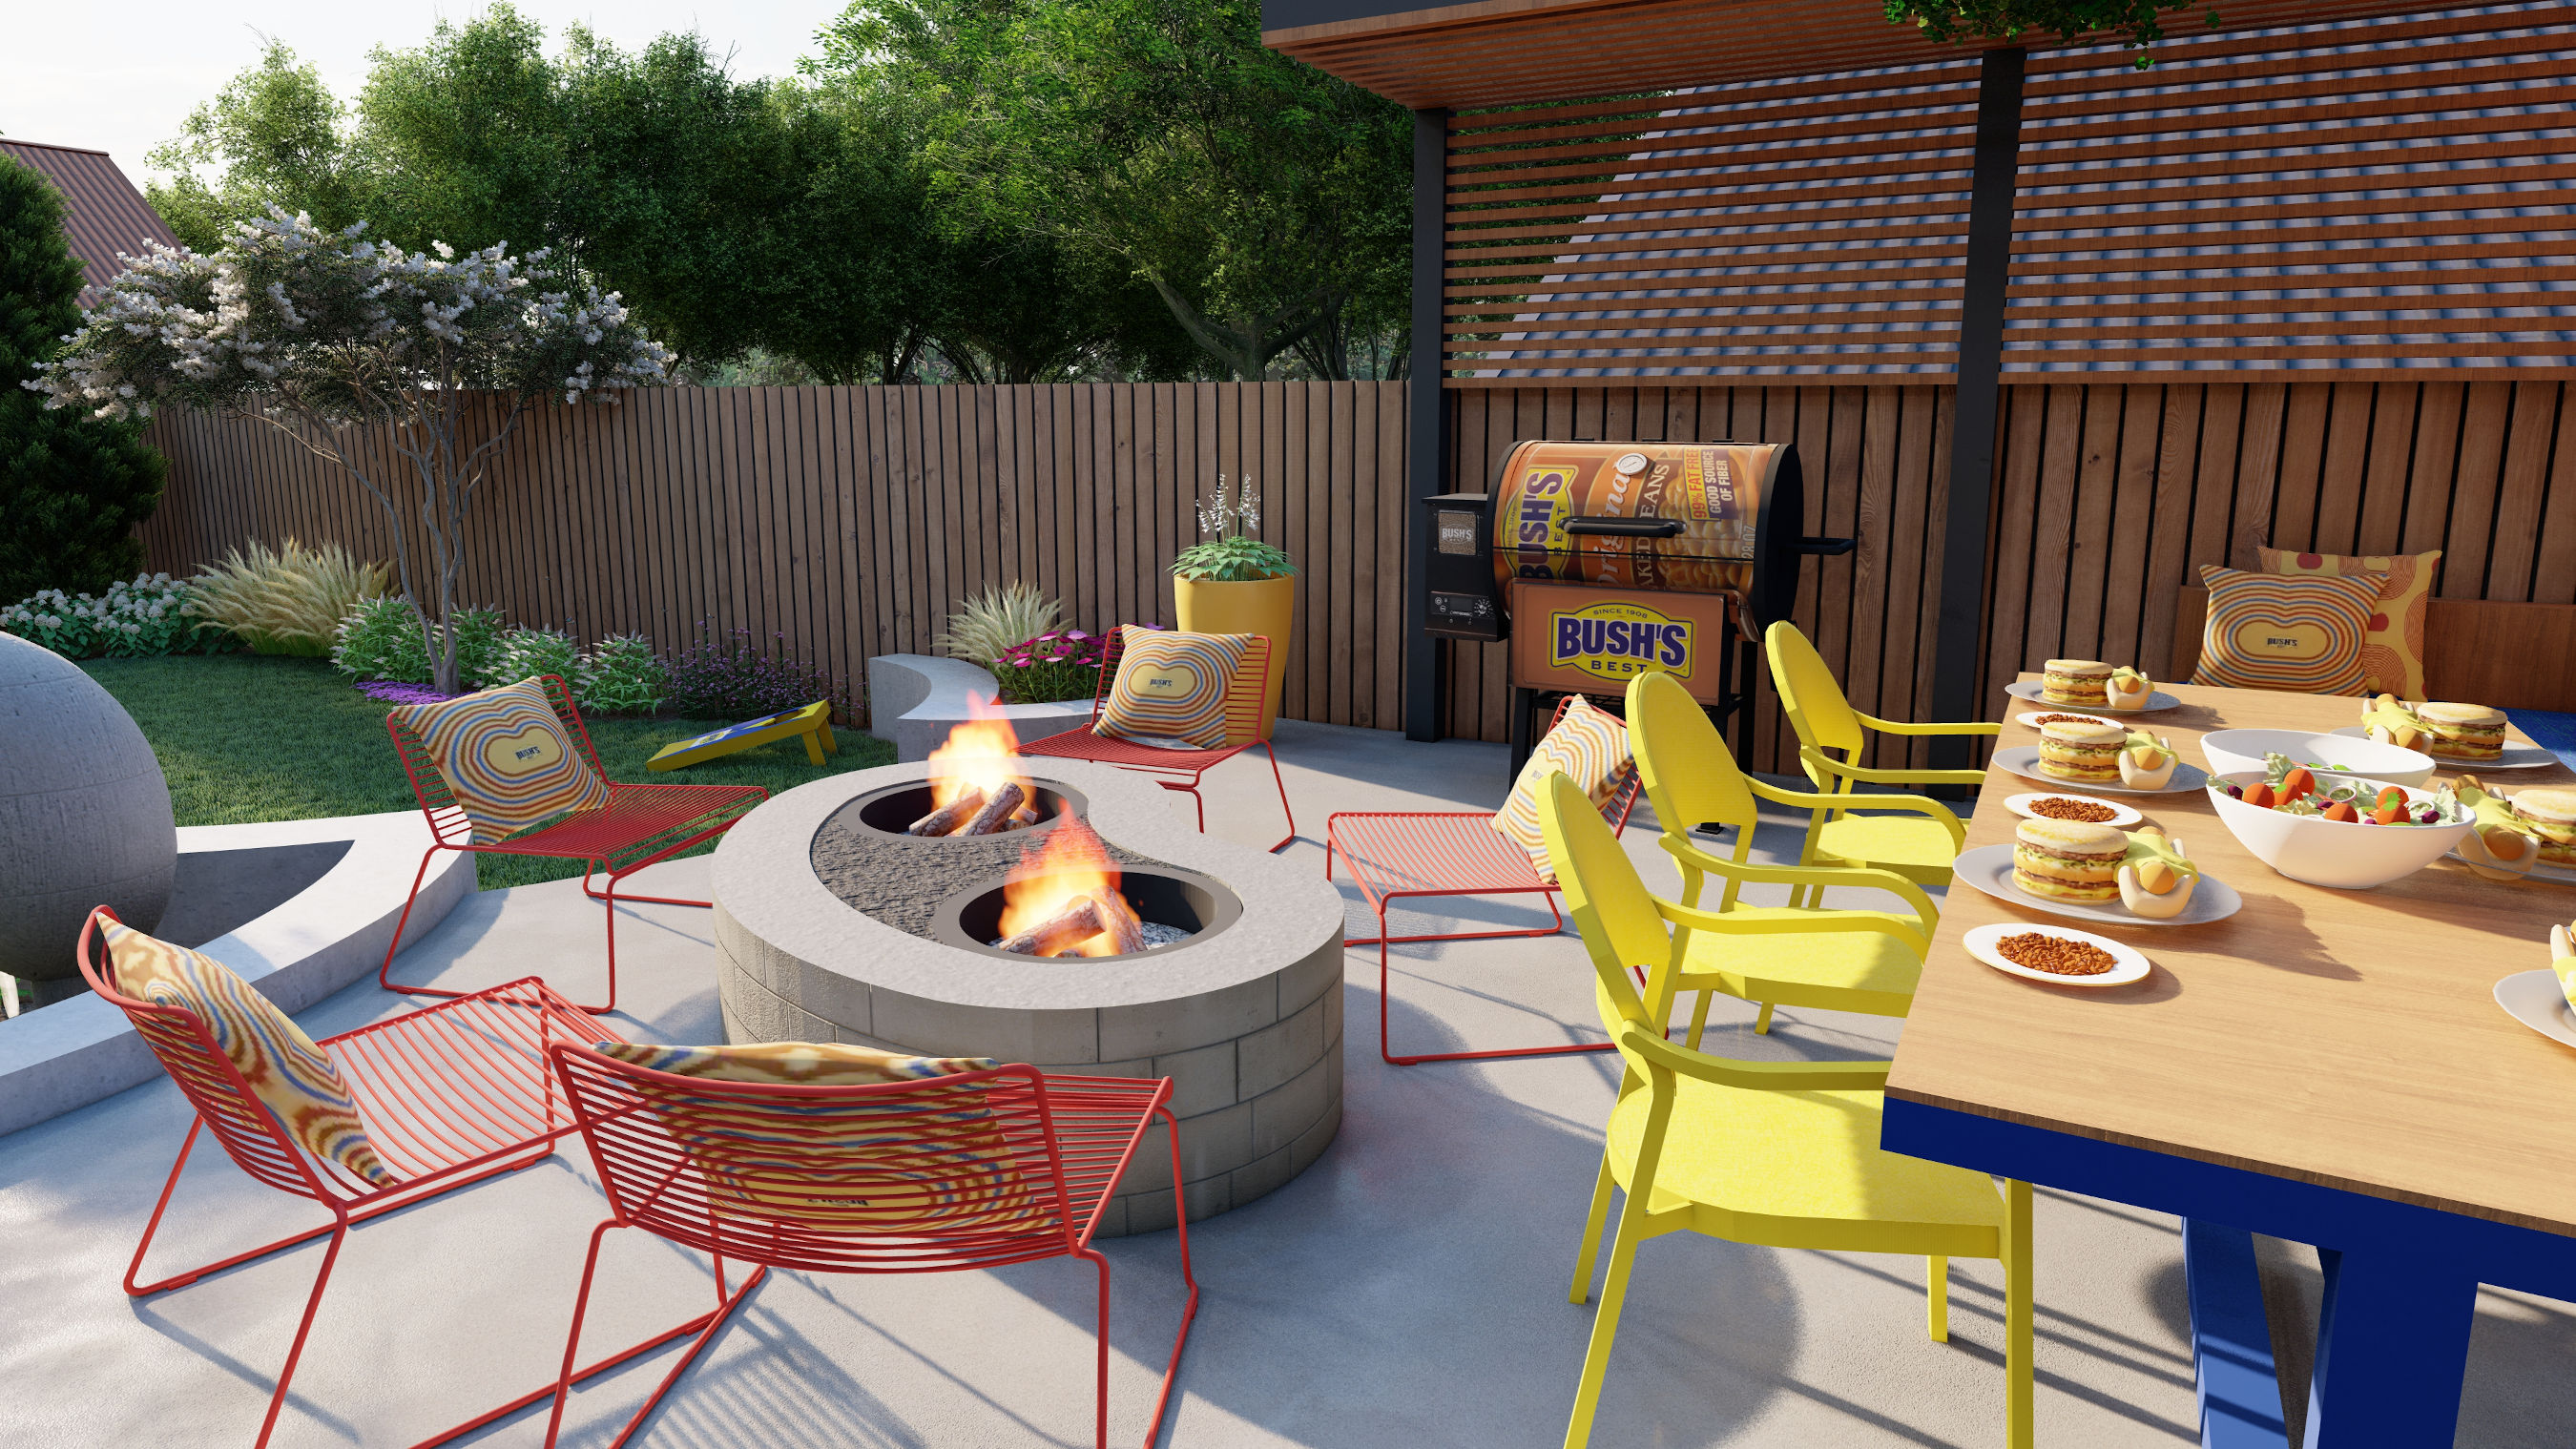 As an unexpected twist on the heart of beautiful gatherings, Bush's will give one lucky winner a total Bush's Bean-themed backyard makeover designed by Mina, including a unique, one-of-a-kind Bean Pit – perfect for grilling or summer ambience.